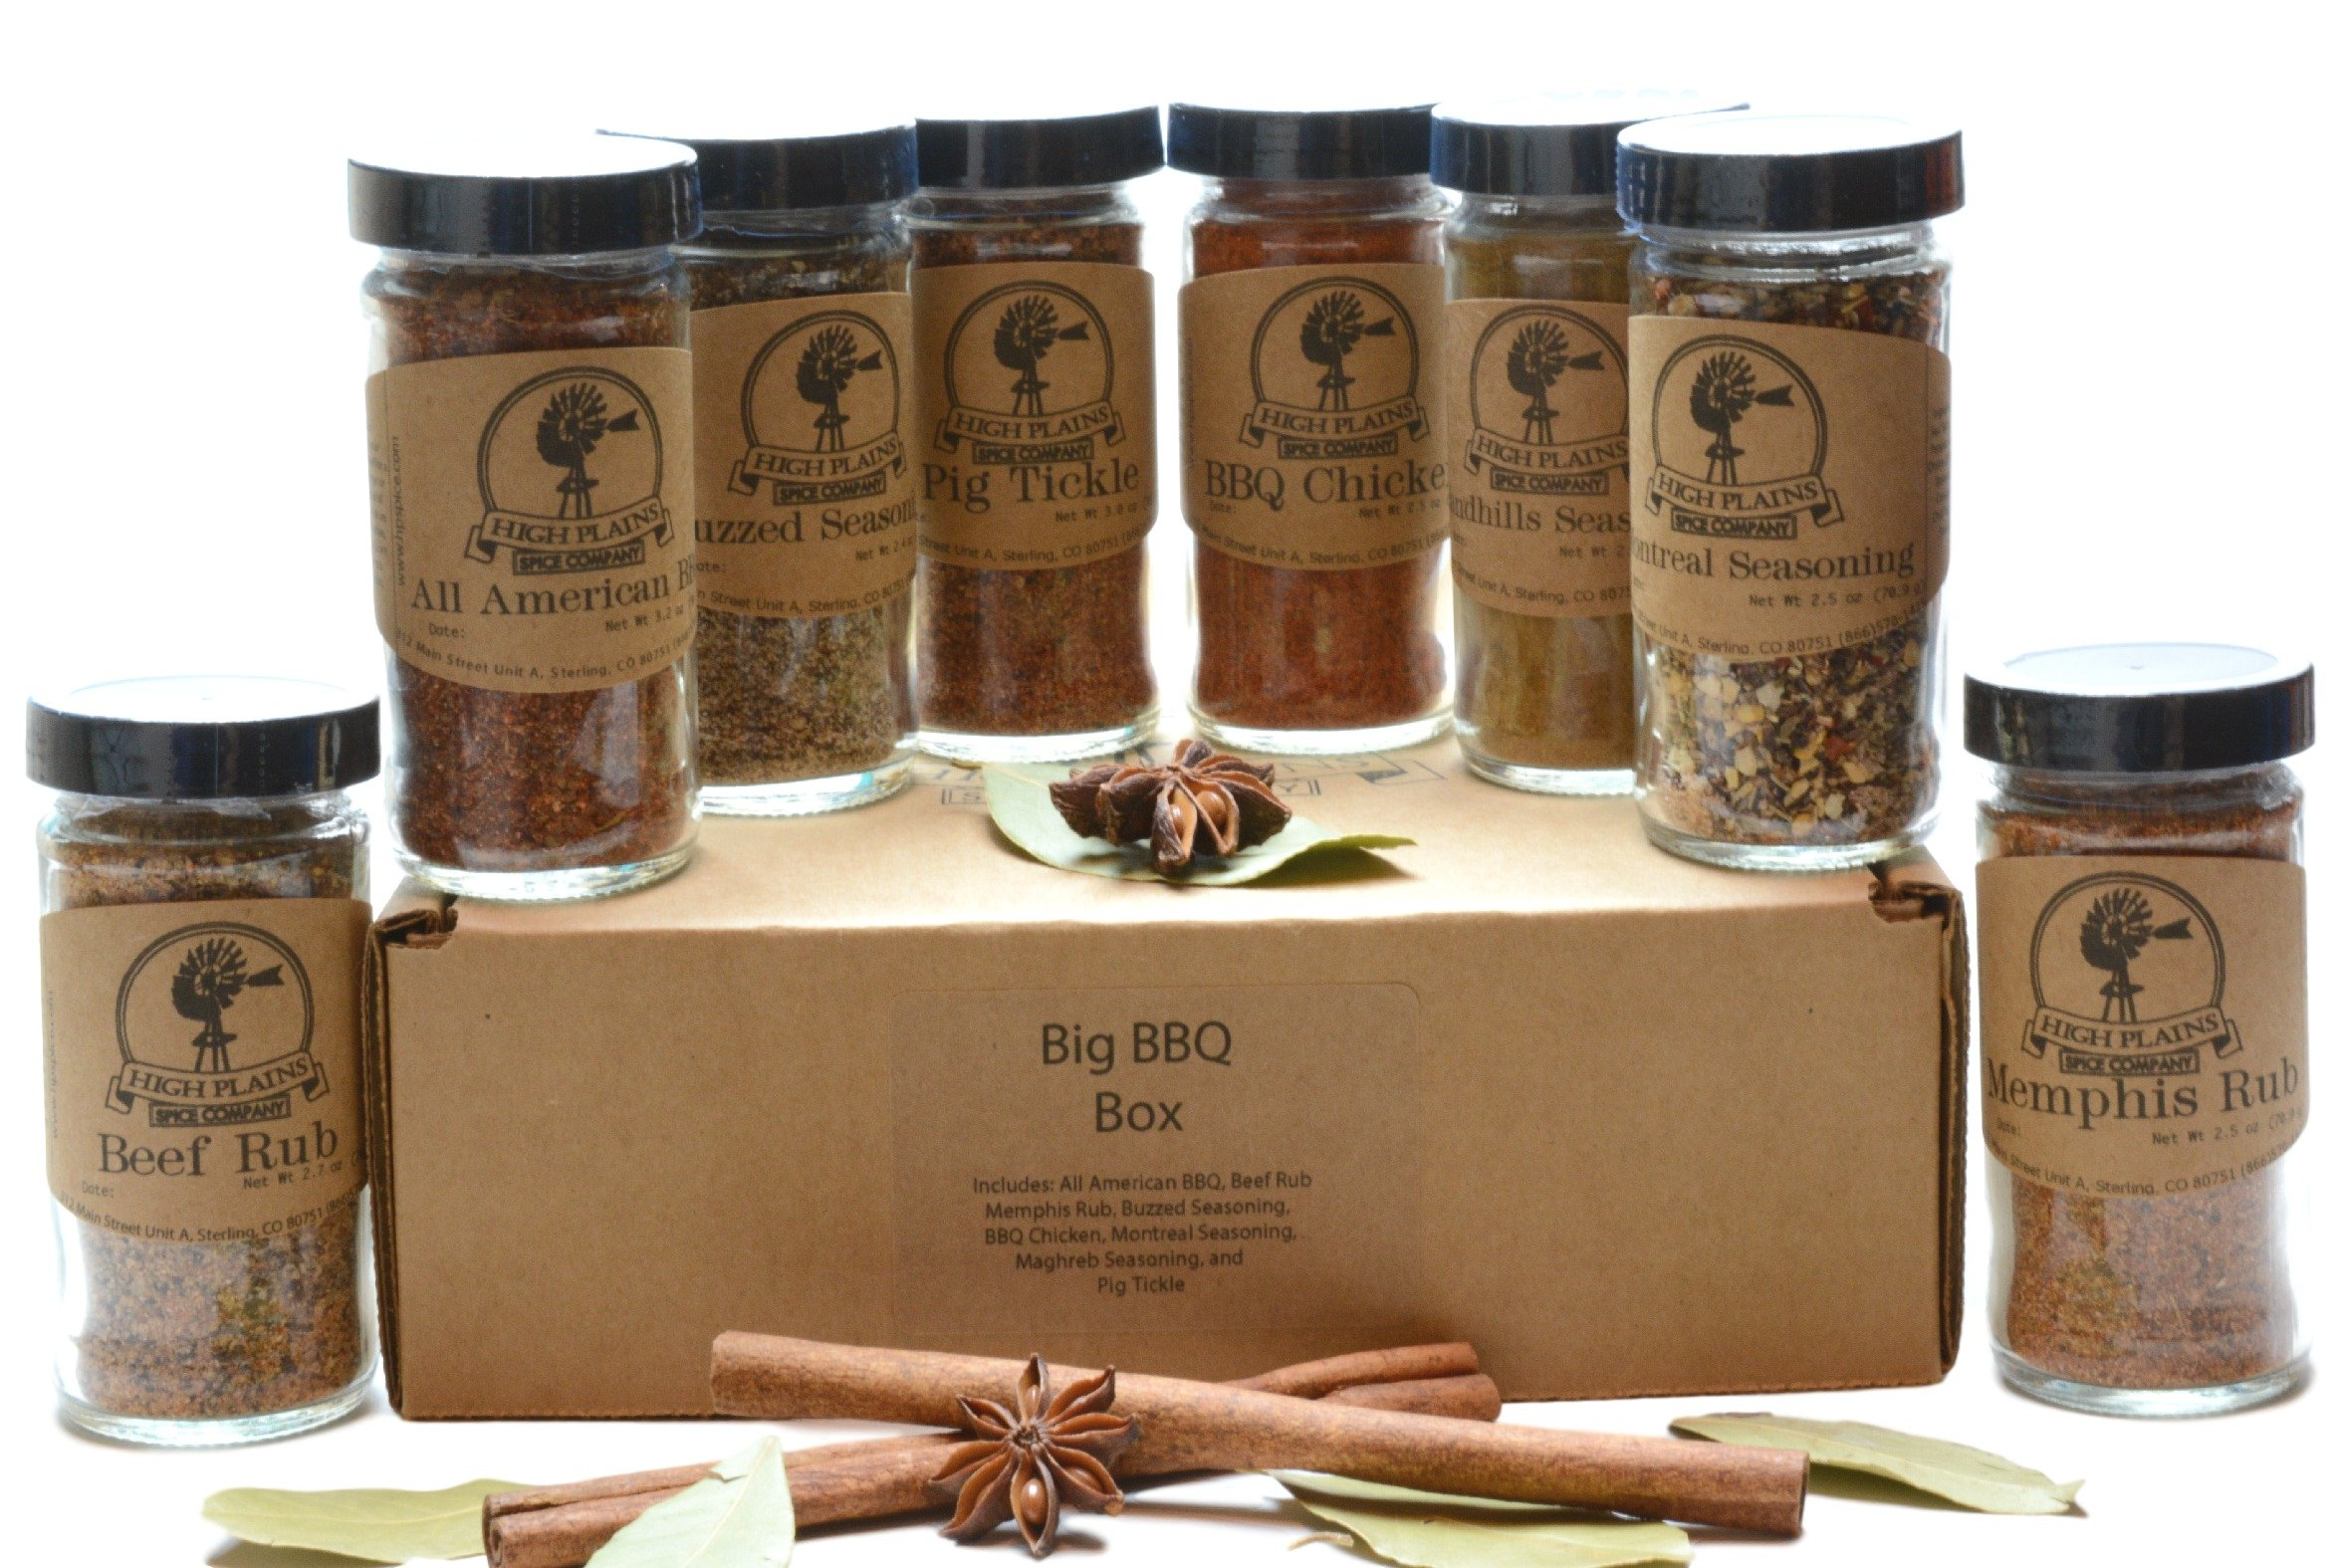 BBQ Rub and Spices Gift Set of 8 ~ Gift Set by High Plains Spice Company ~ Gourmet Meat and Veggie Spice Blends & Rubs For Beef, Chicken, Veggies & All Recipes ~ Spice Blends Handcrafted In Colorado